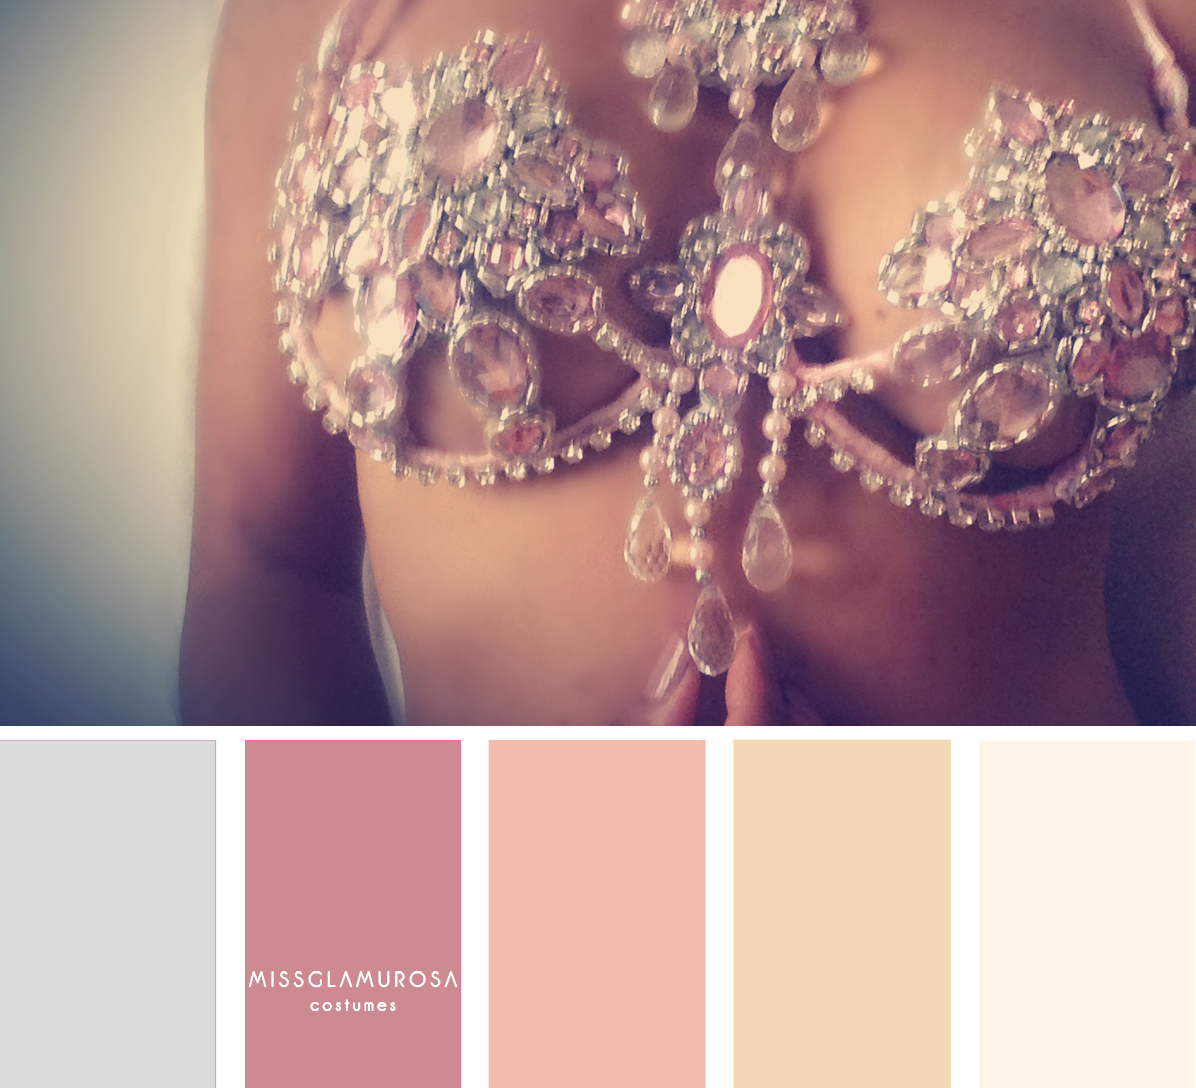 Color palette ideas for samba costume by Miss Glamurosa Costumes